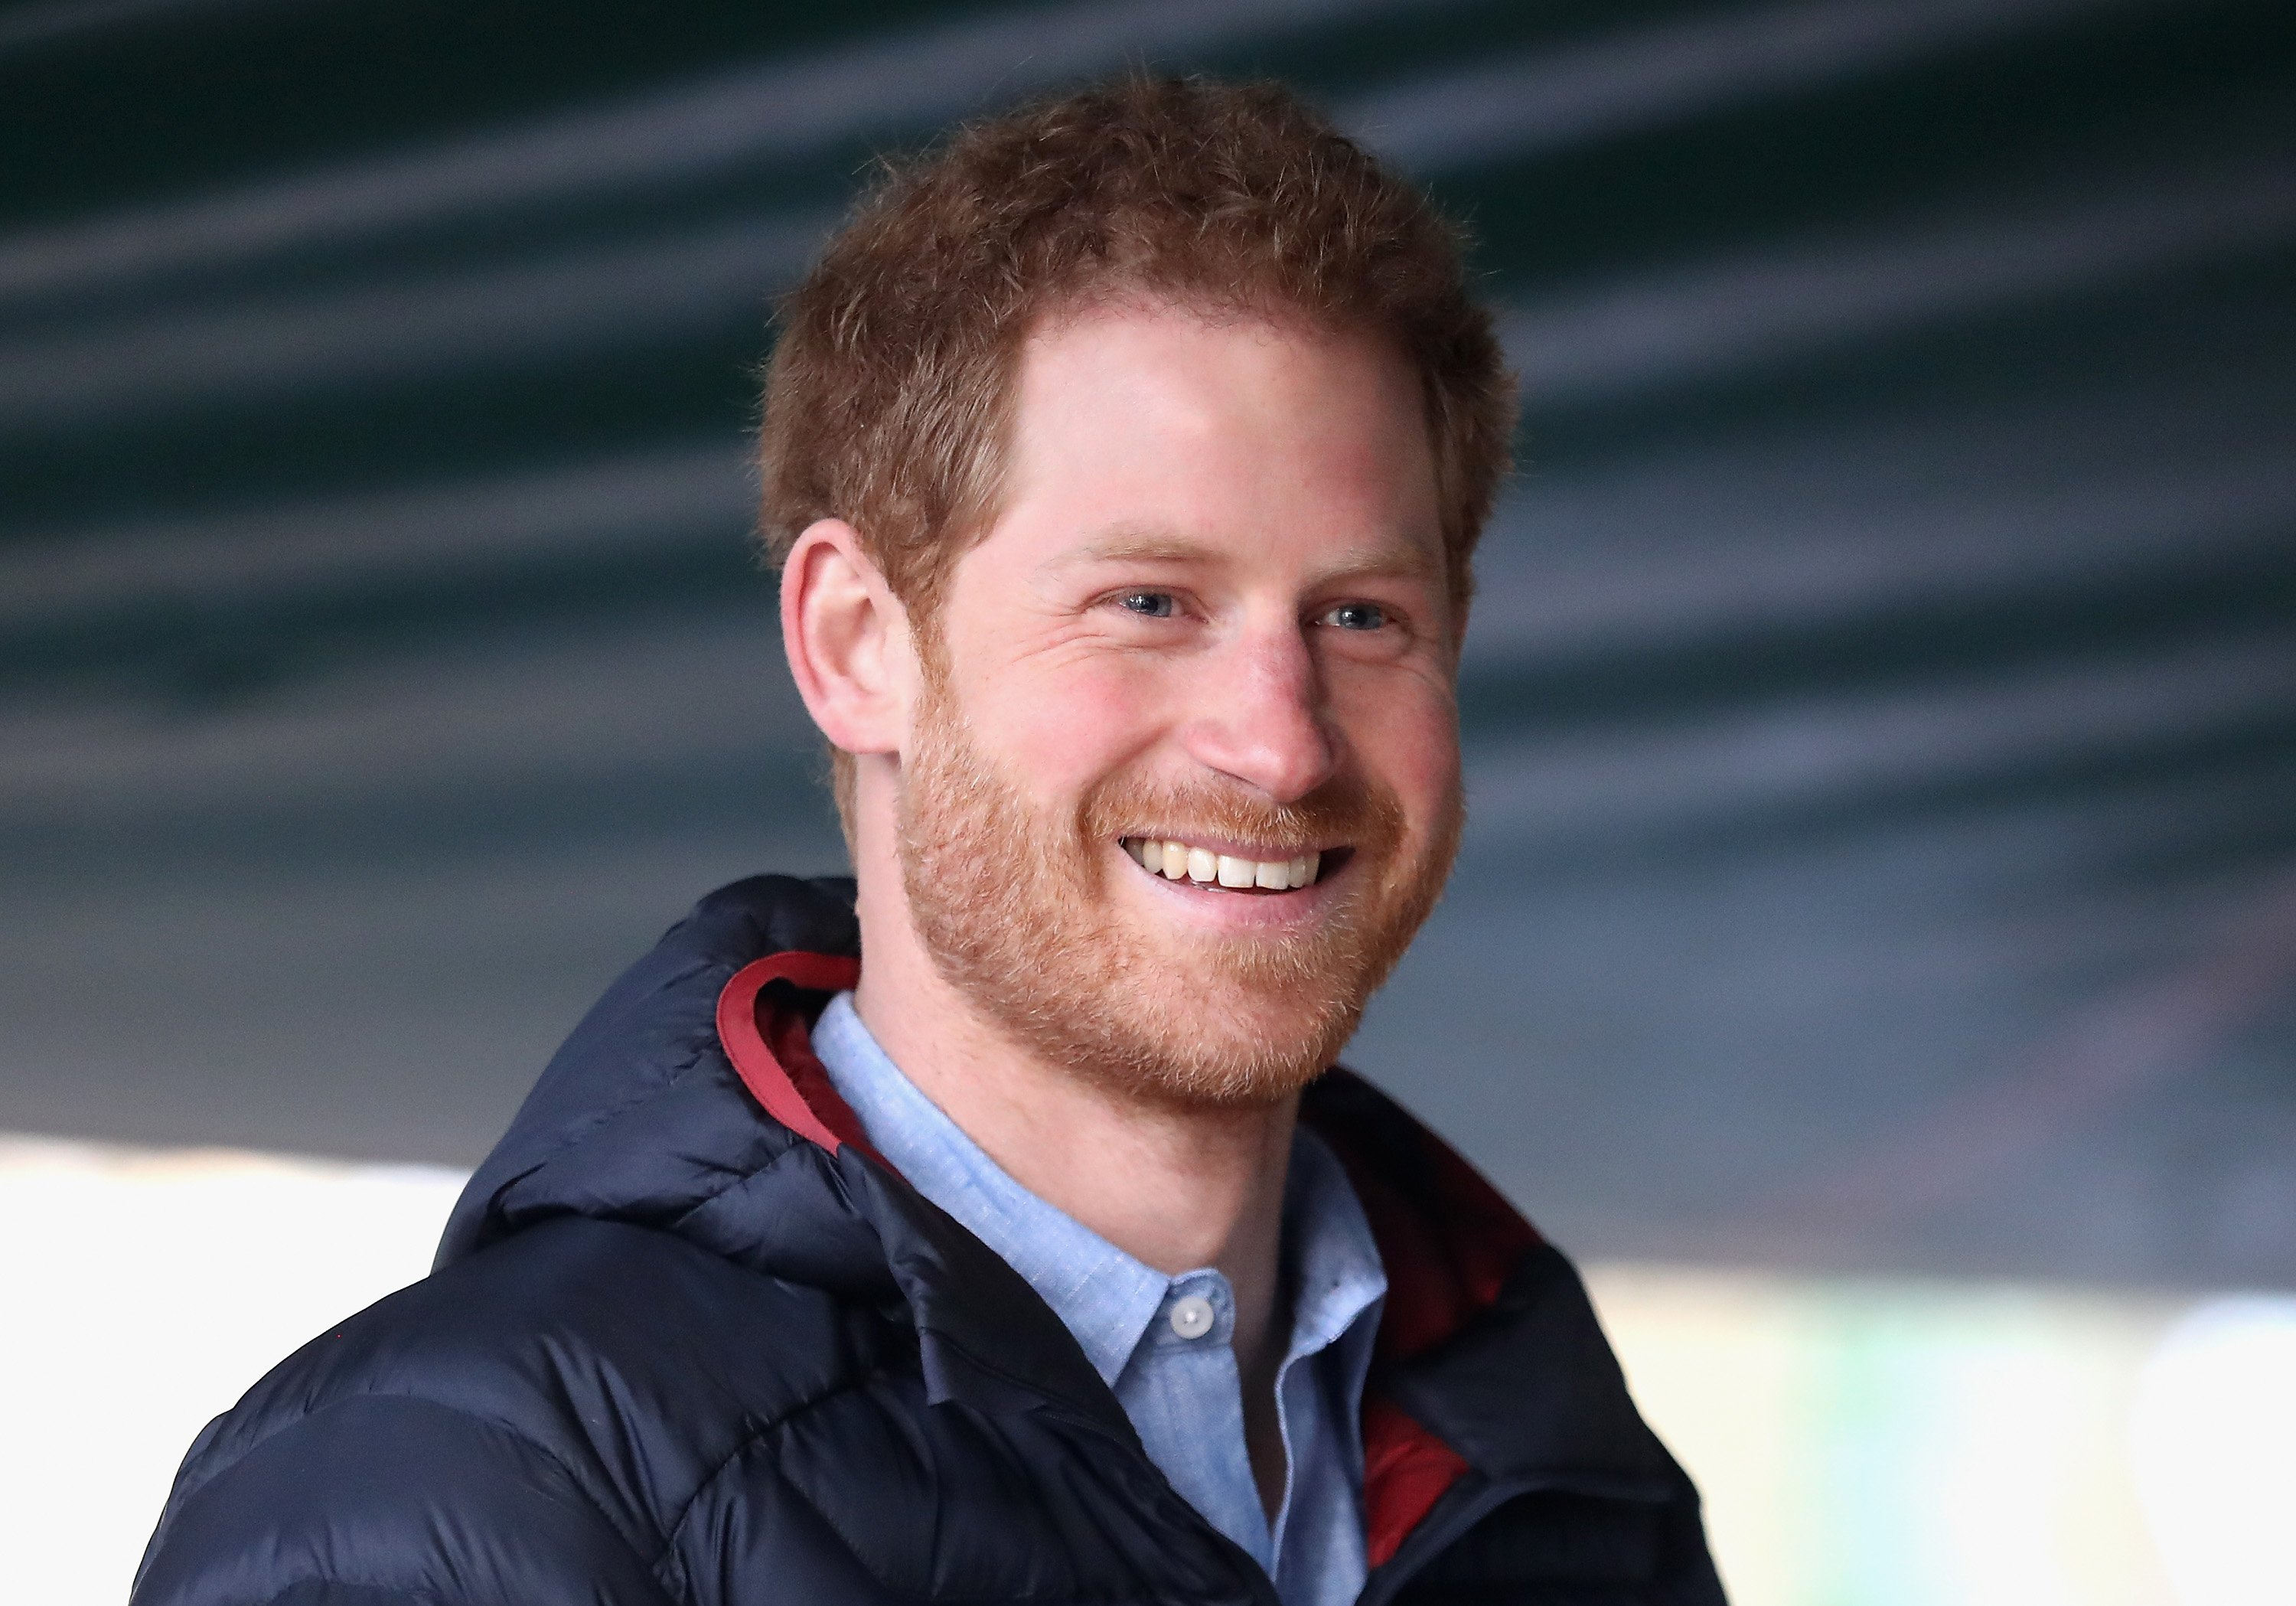 Image Credits: Getty Images / Chris Jackson   Prince Harry visits the Help for Heroes Hidden Wounds Service at Tedworth House on January 23, 2016 in Tidworth, England.